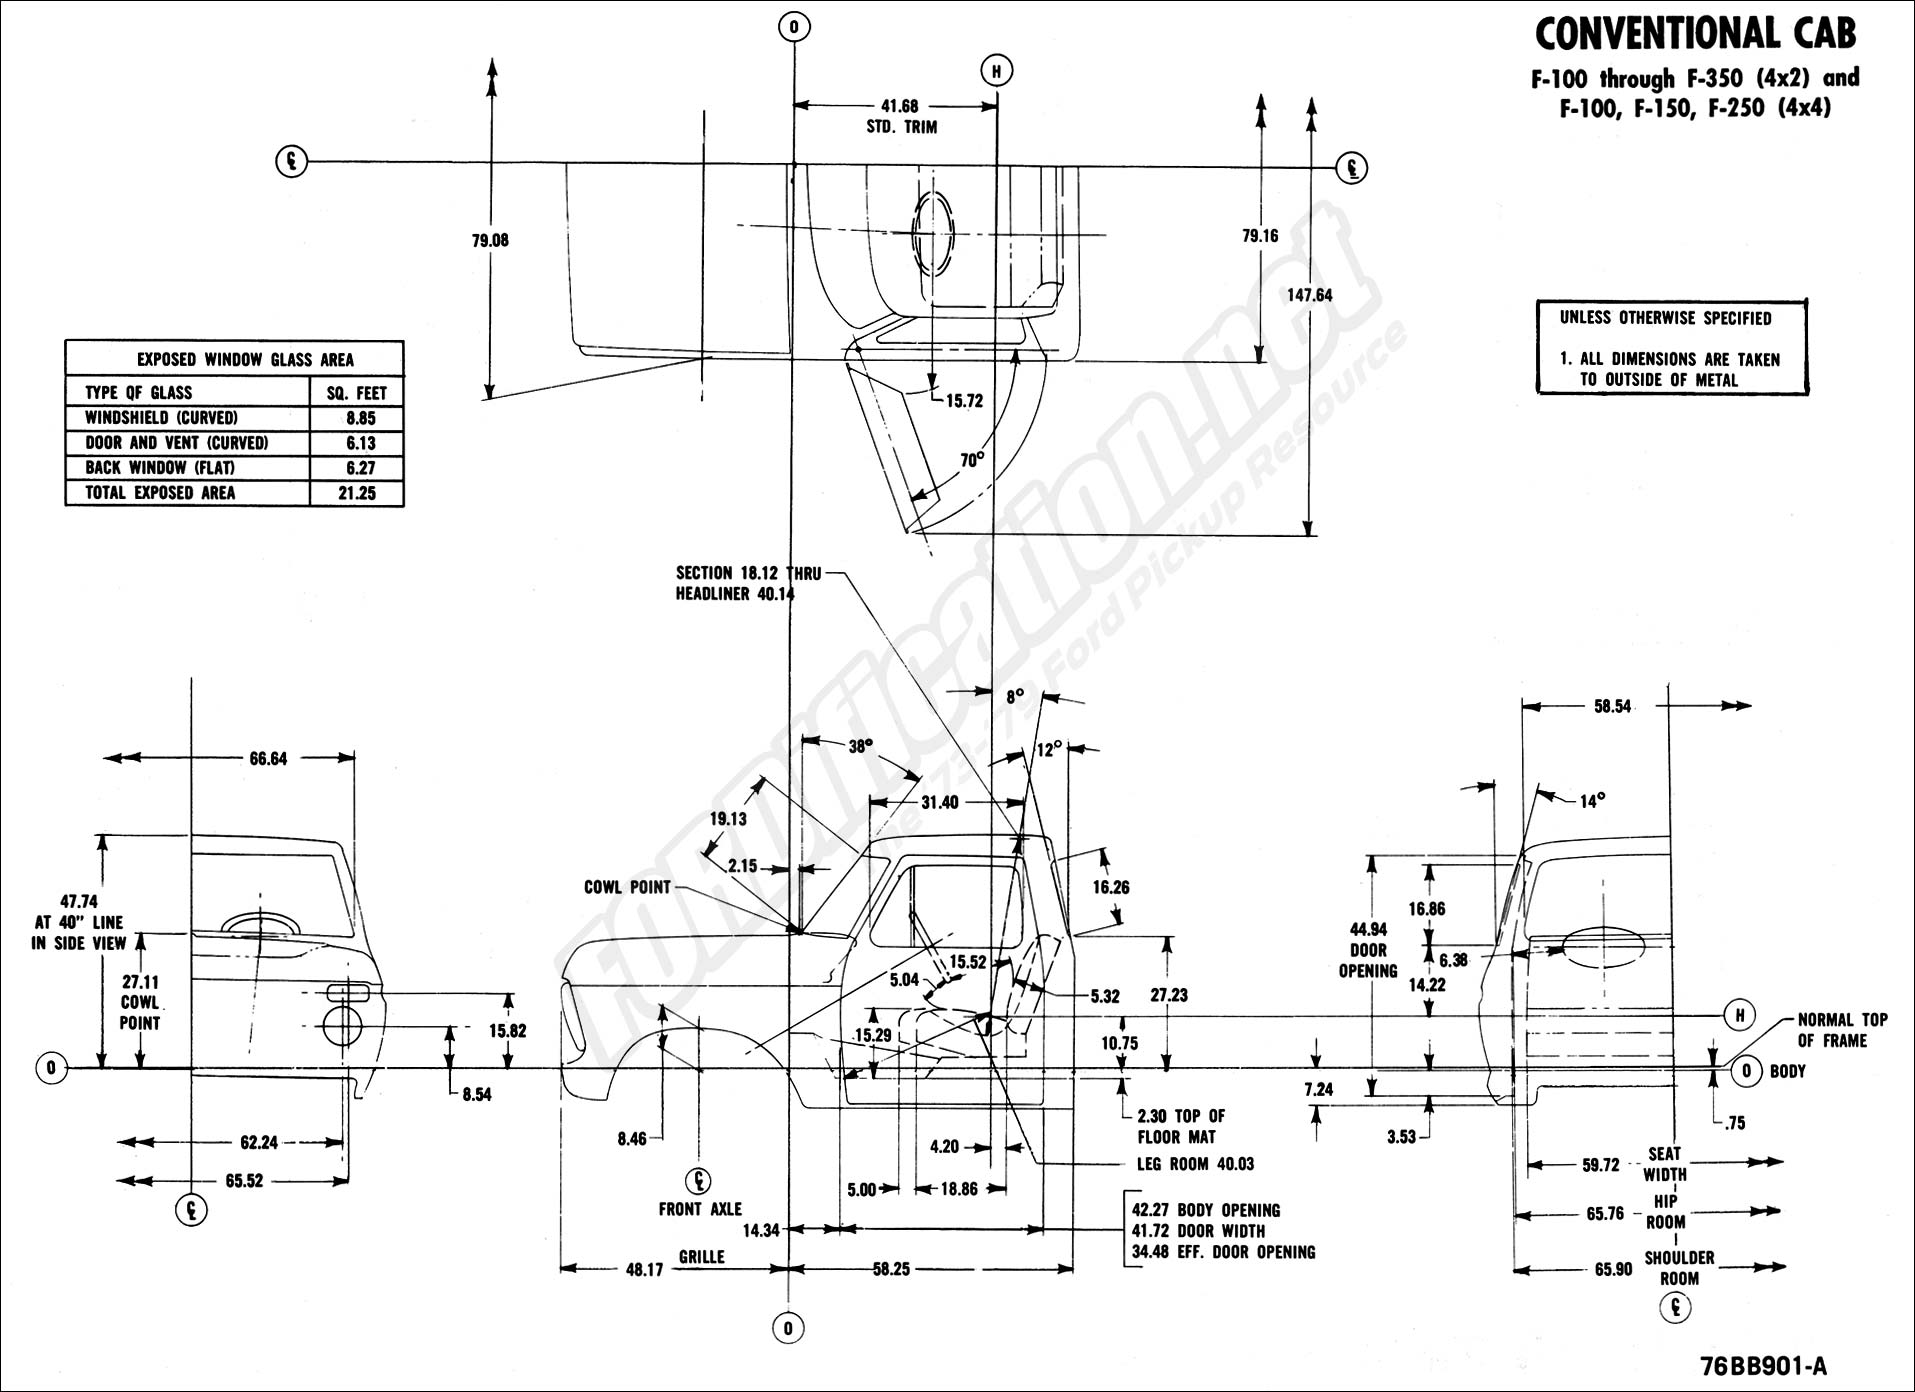 73-79 grille dimensions